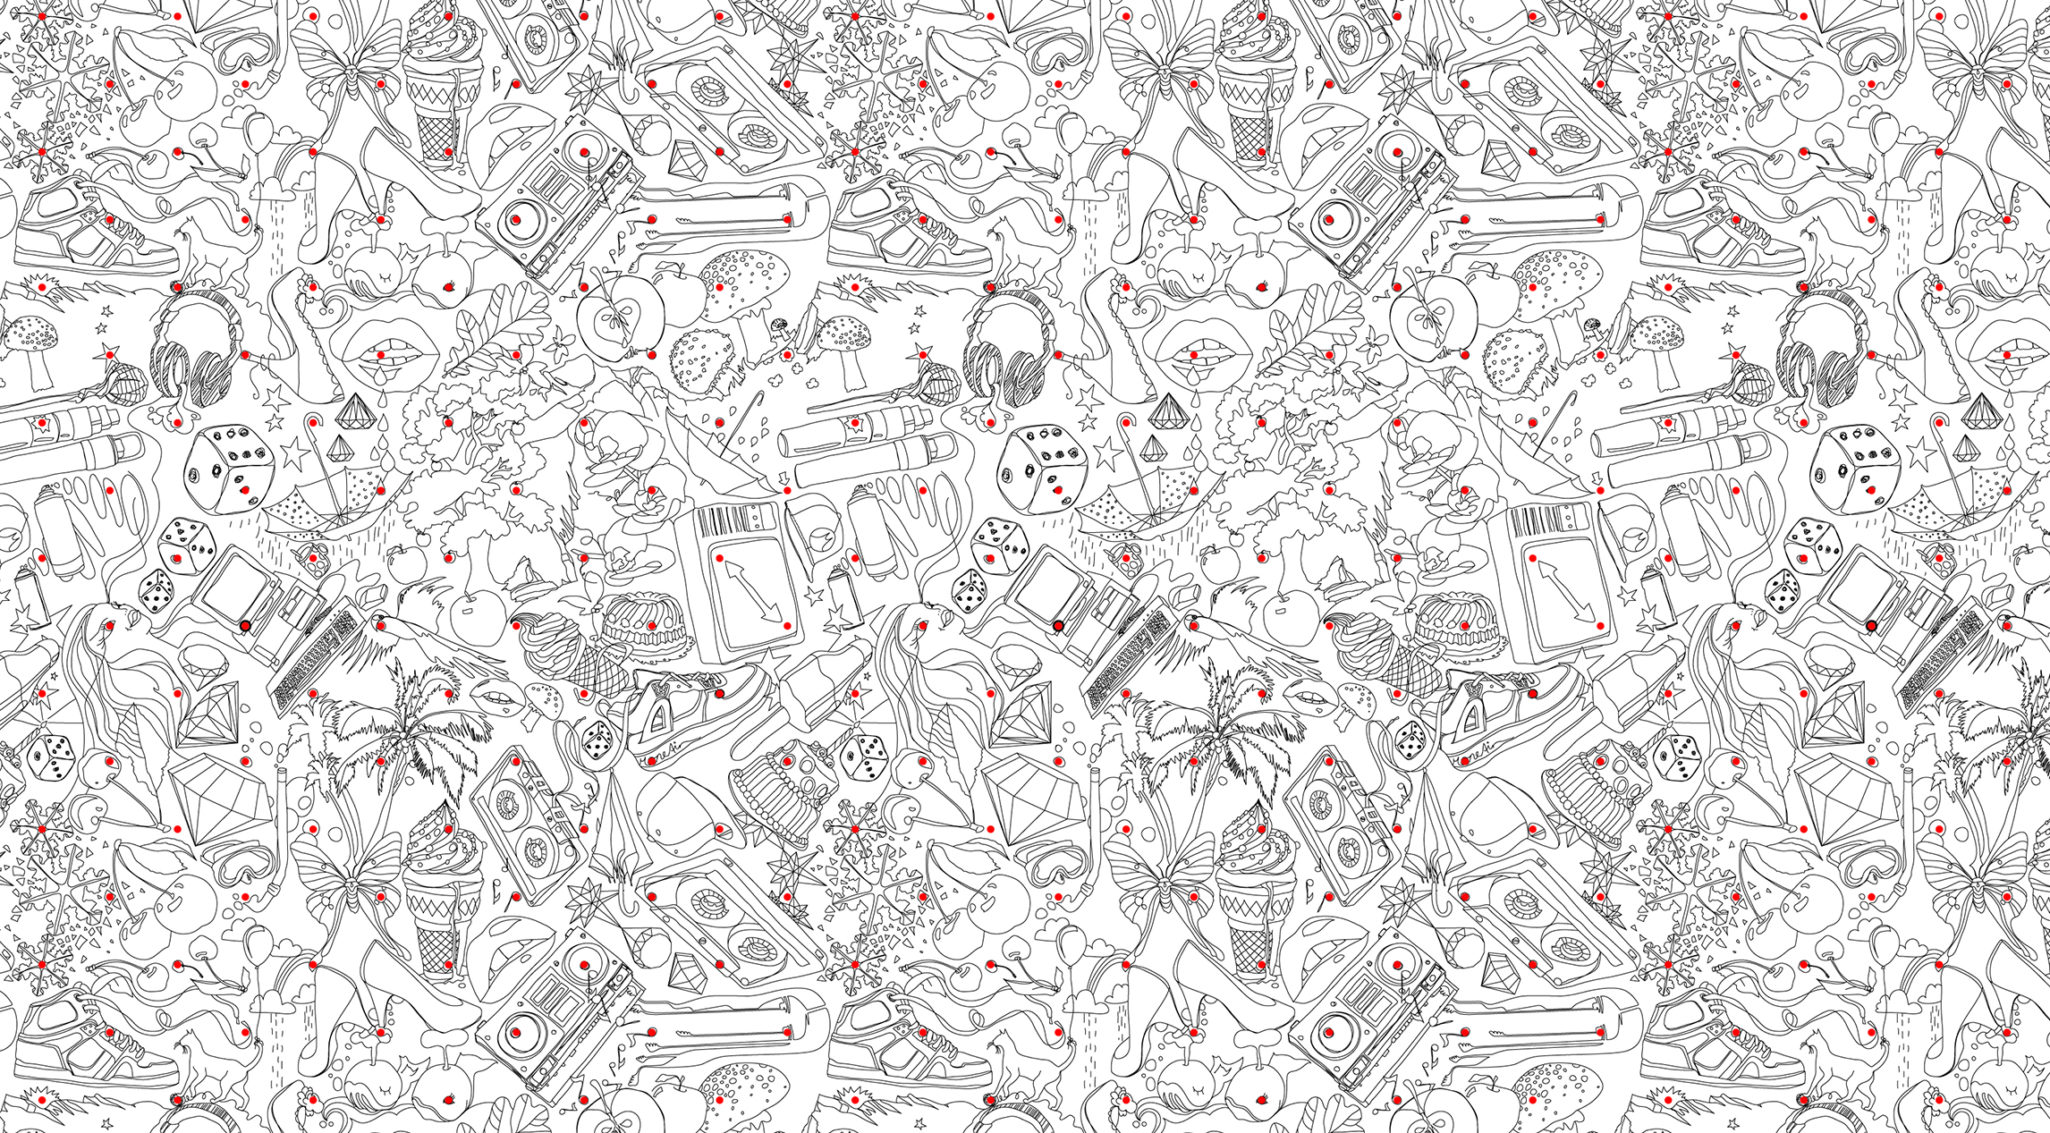 Repetitive allover pattern with black and white line illustration